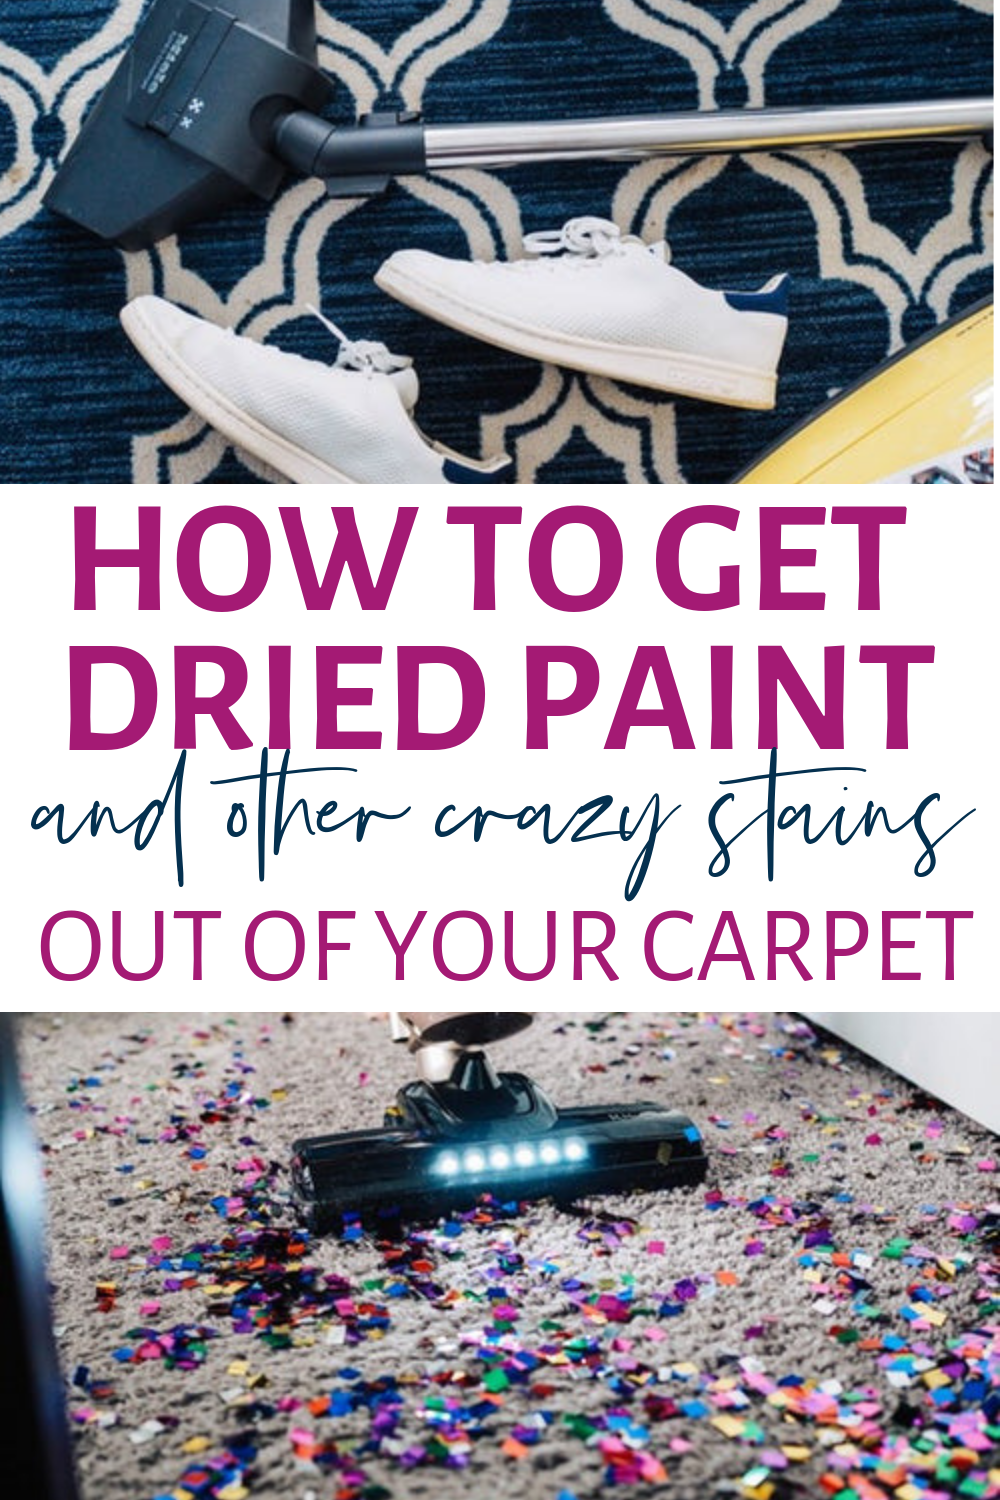 How To Get Dried Dog Vomit Out Of Carpet